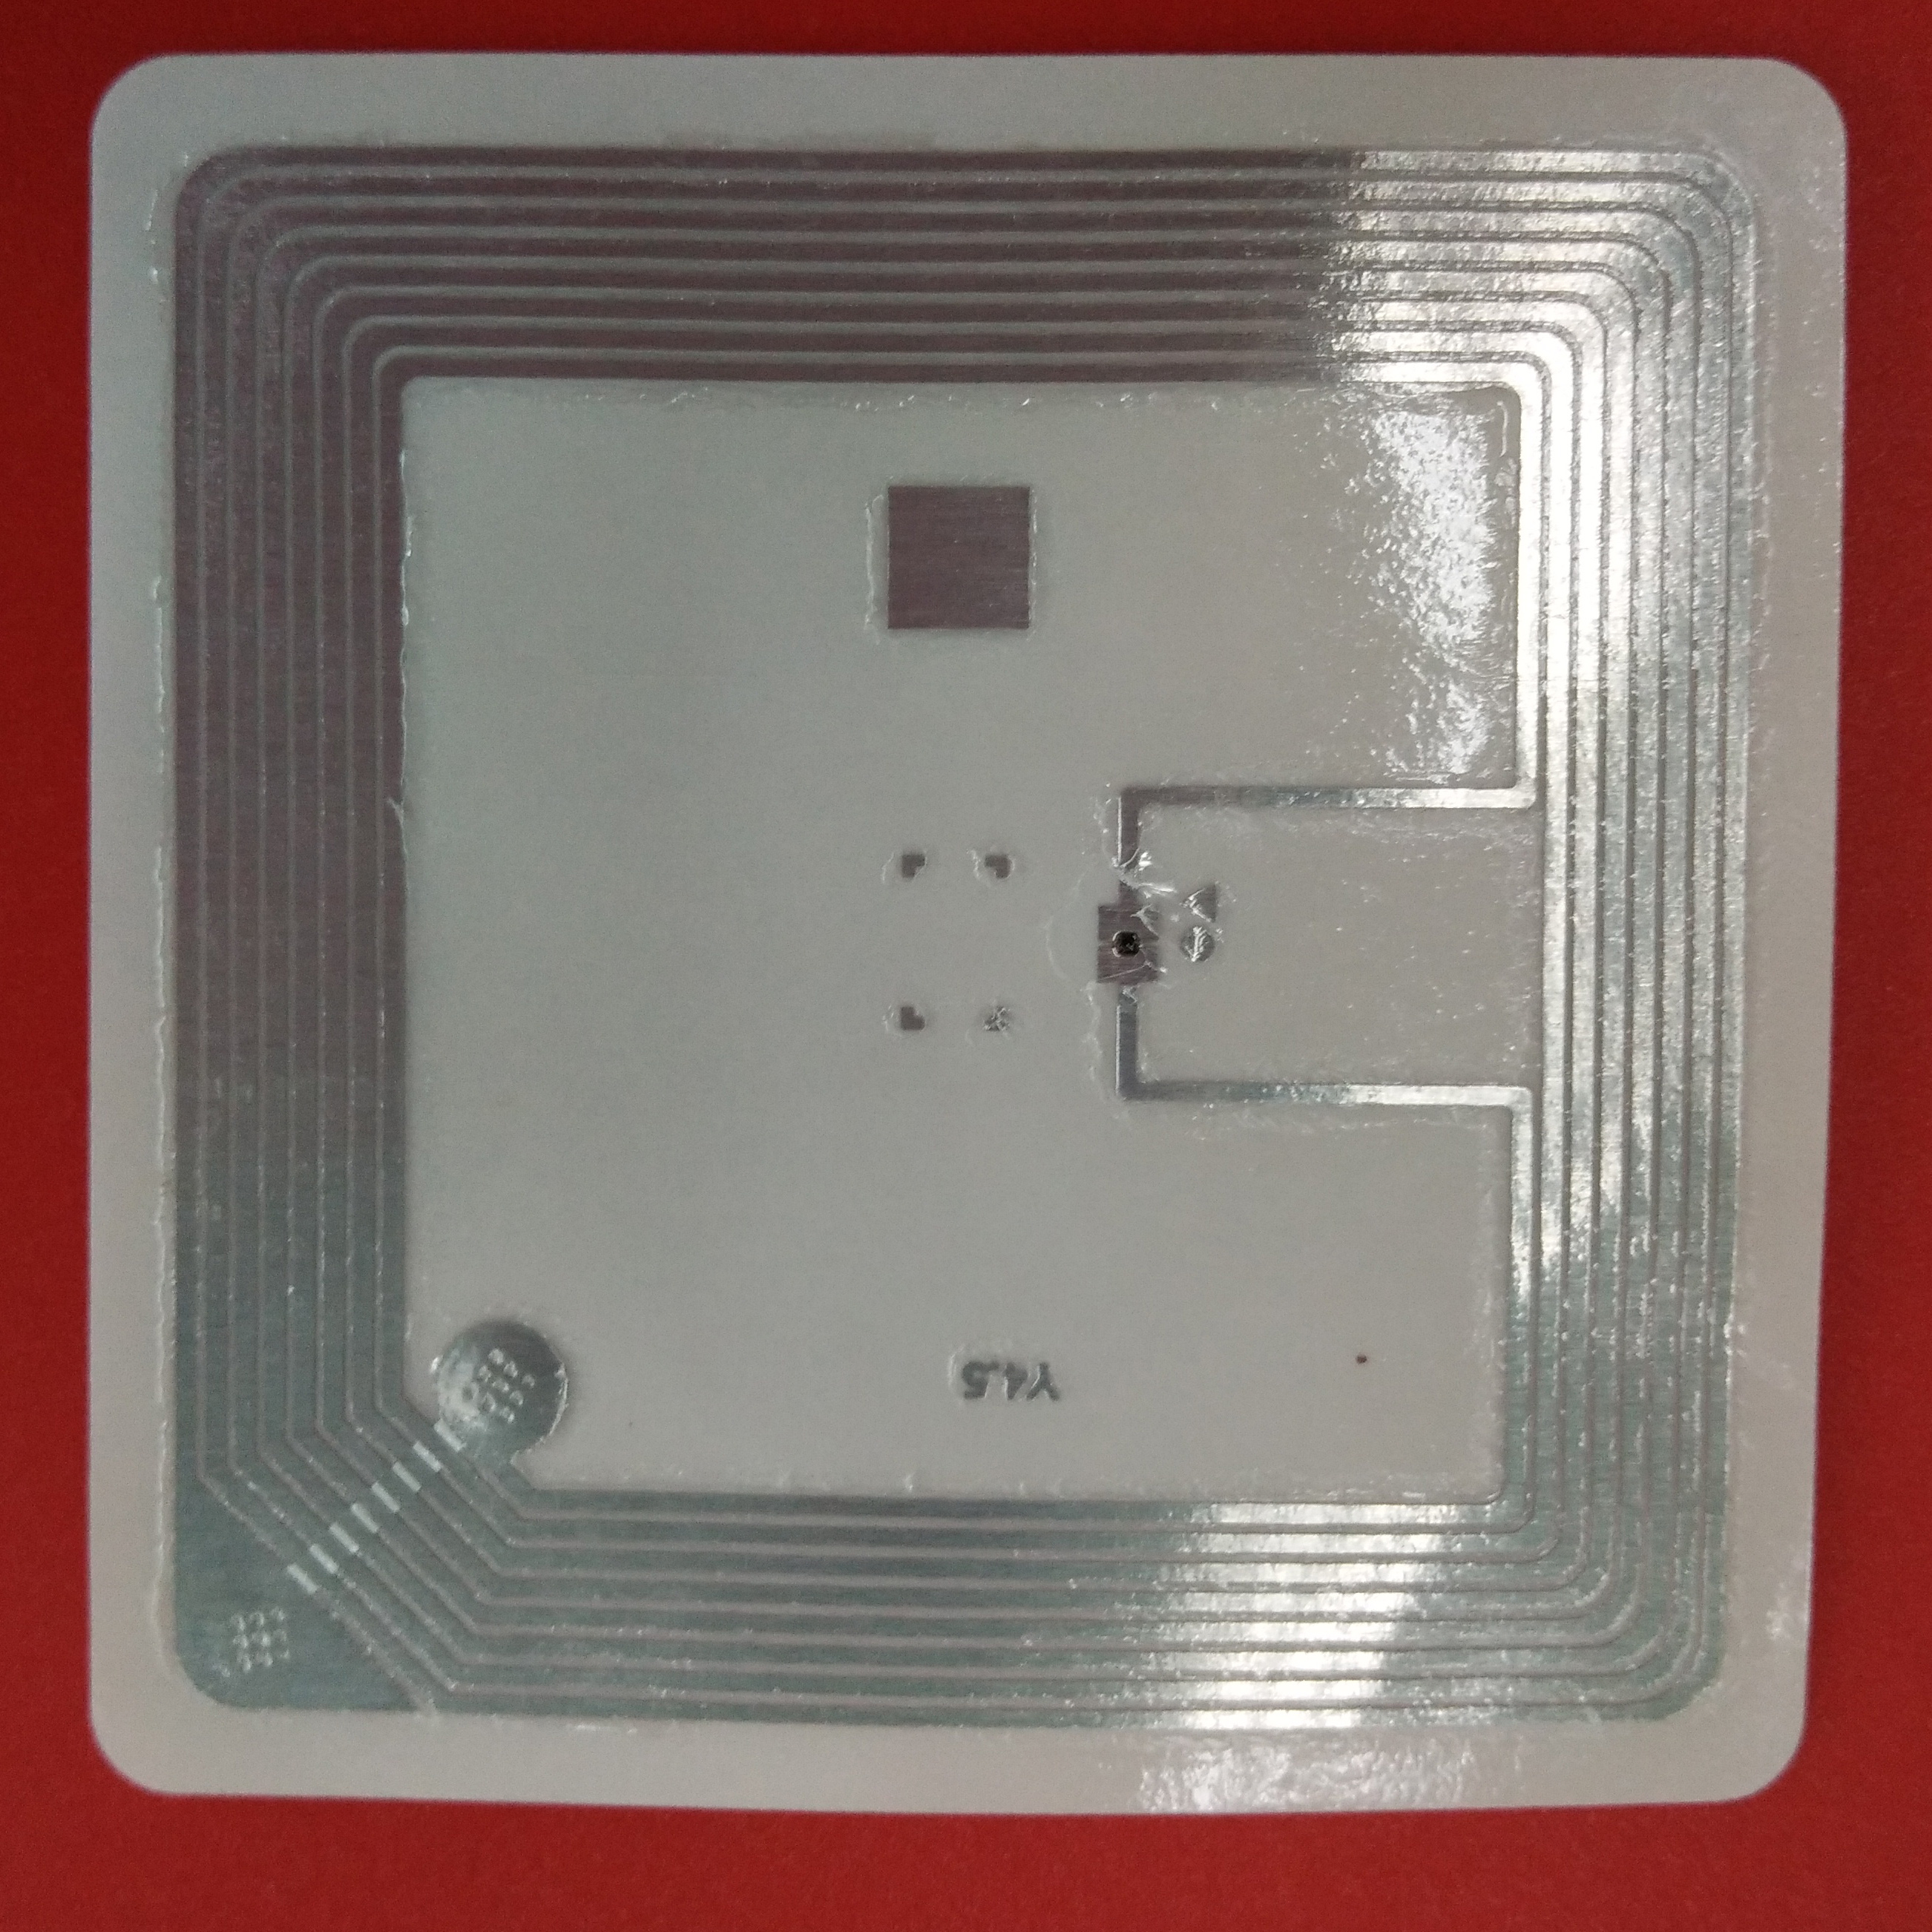 RFID HFD 50*50mm Electronic Label NXP I CODE SLI-X